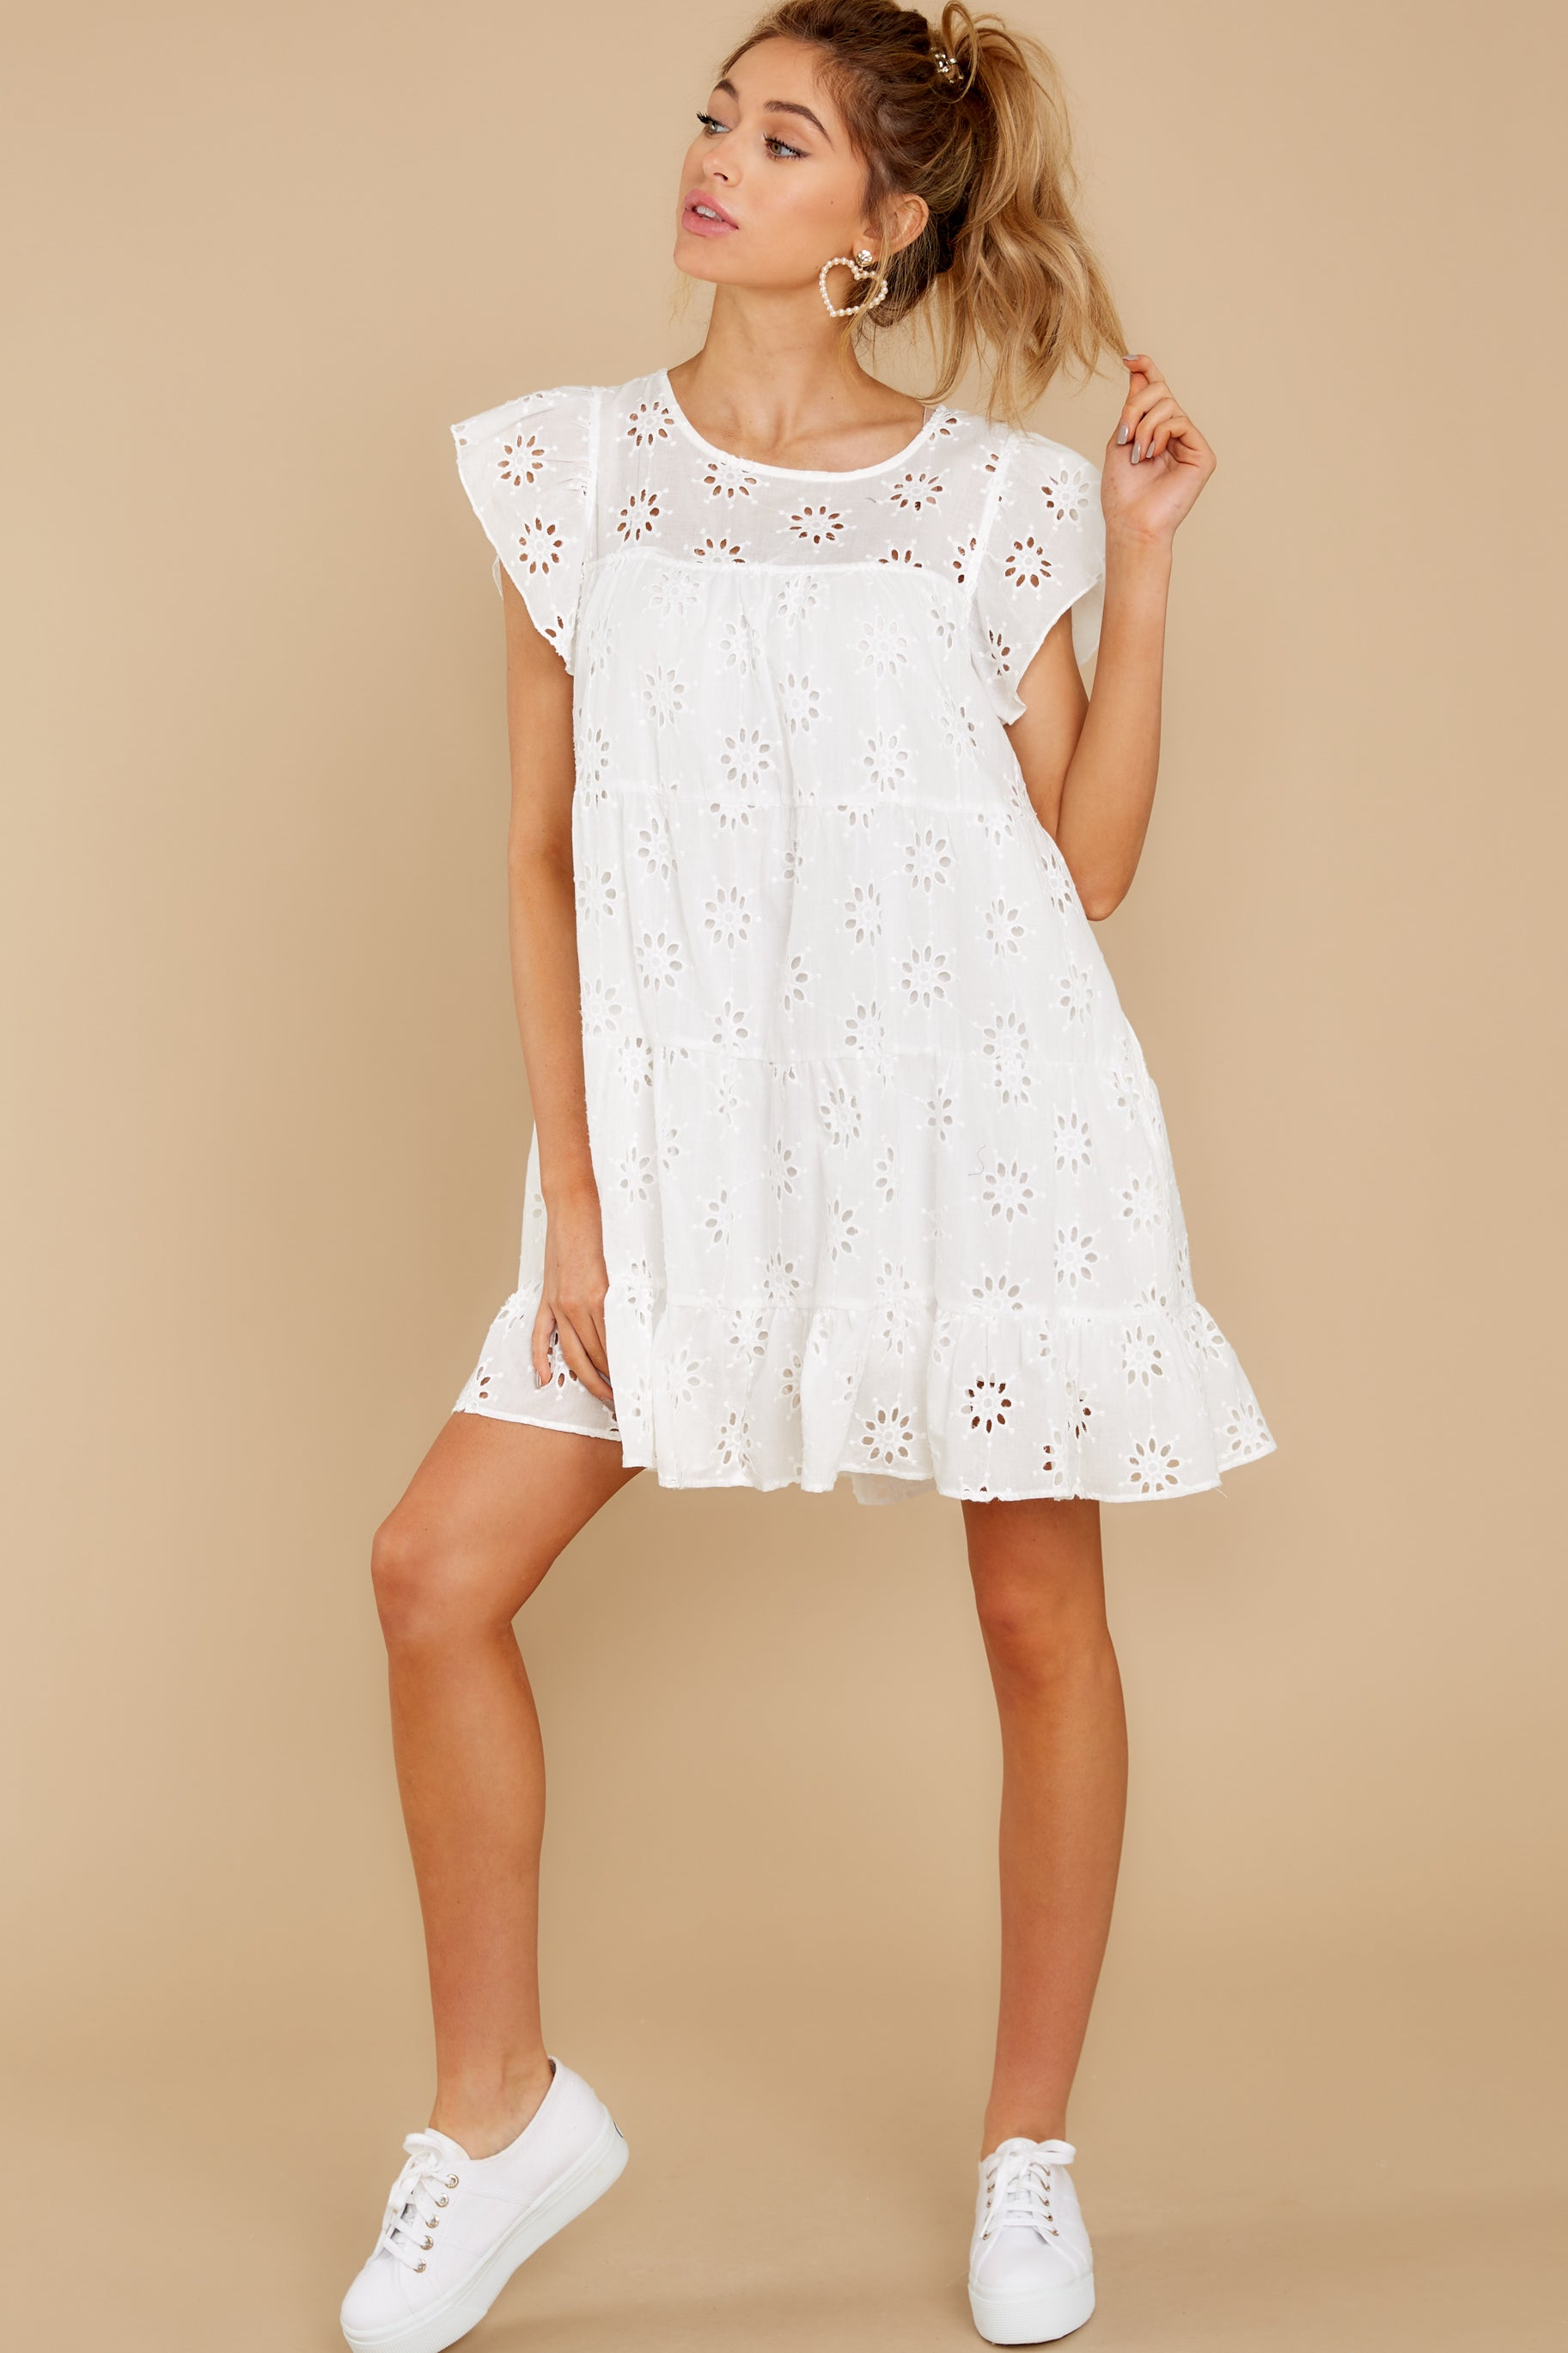 4 Eye For An Eyelet White Dress at reddress.com